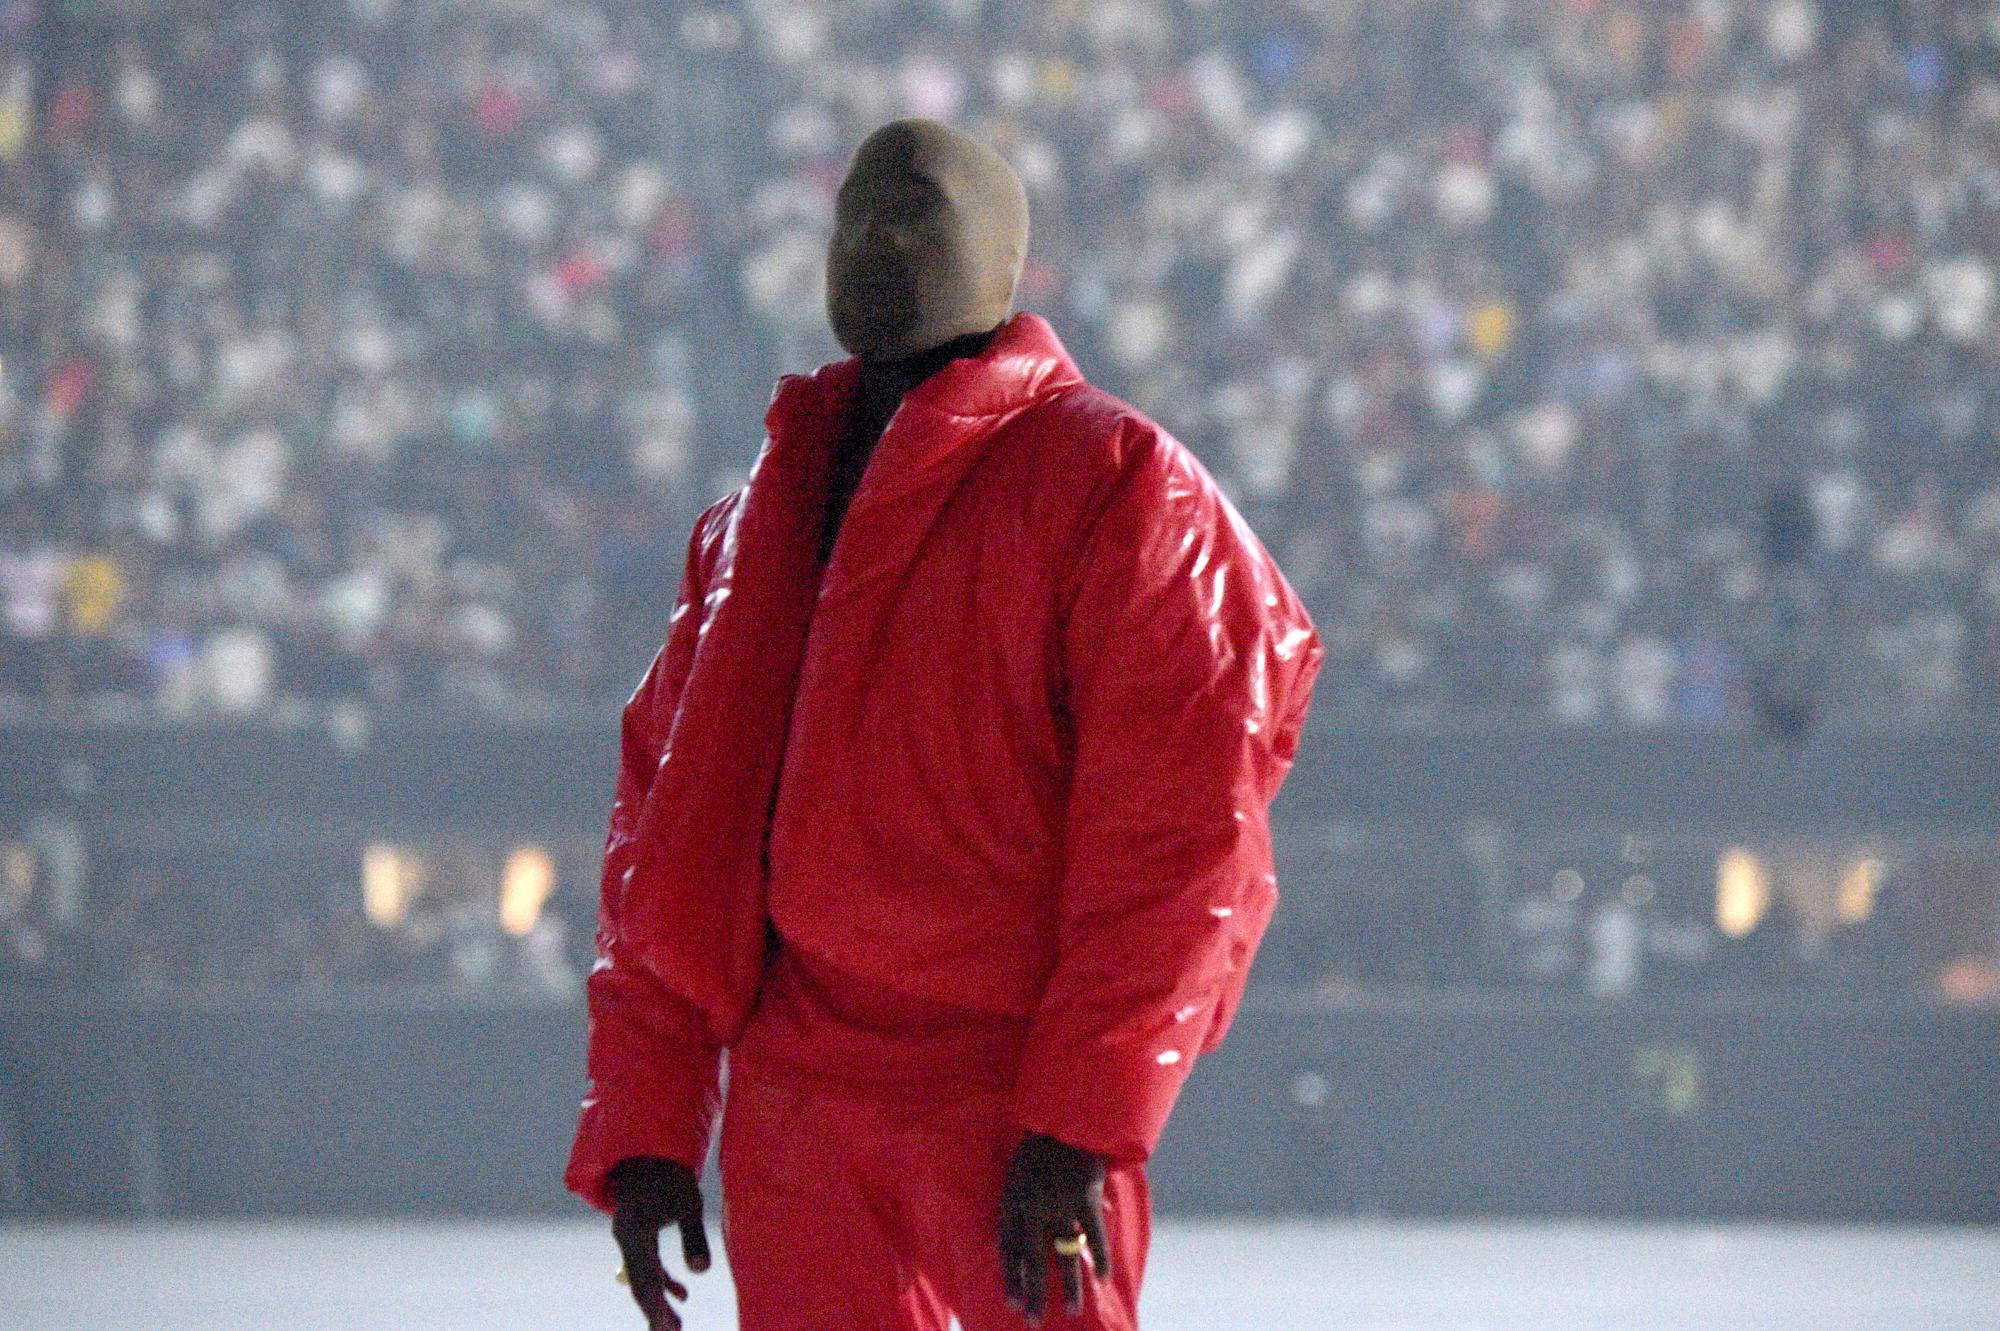 Kanye West apparently went to the Atlanta United game and may have been kicked out of some seats